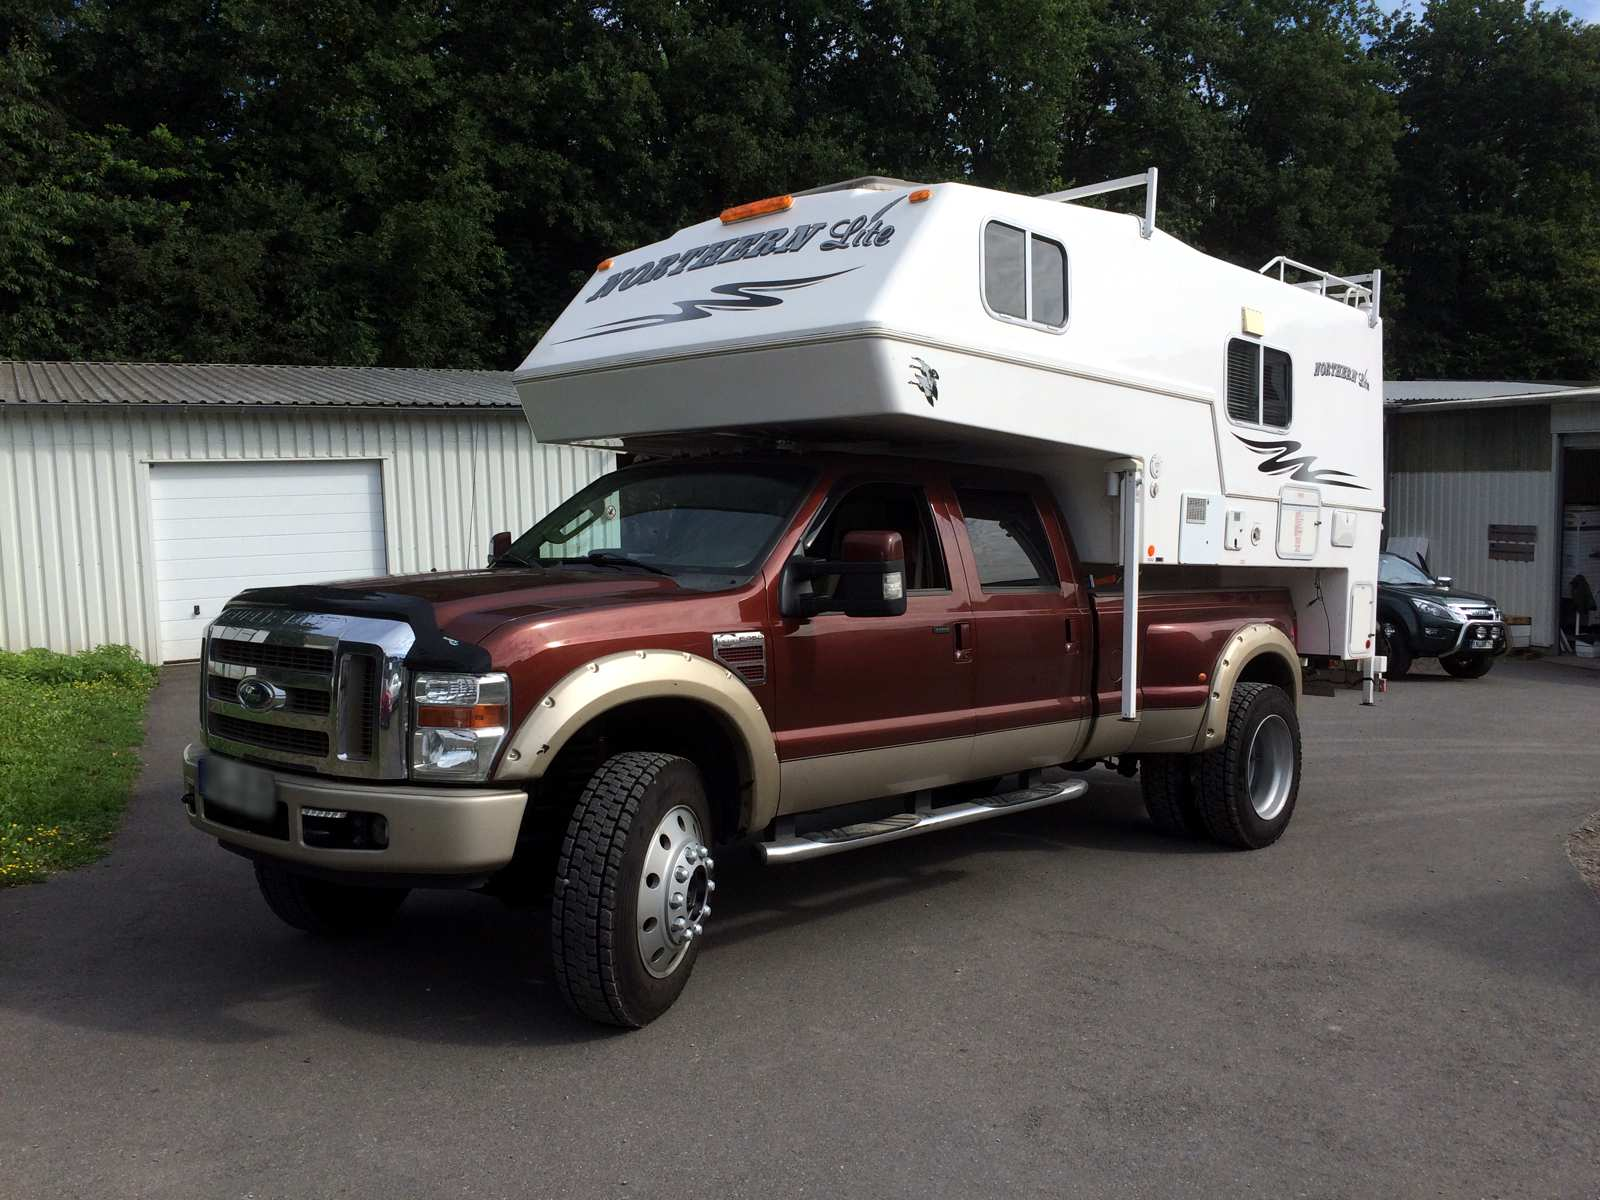 Ford F-450 Superduty Crewcab Dually Longebd mit Northern Lite Wohnkabine